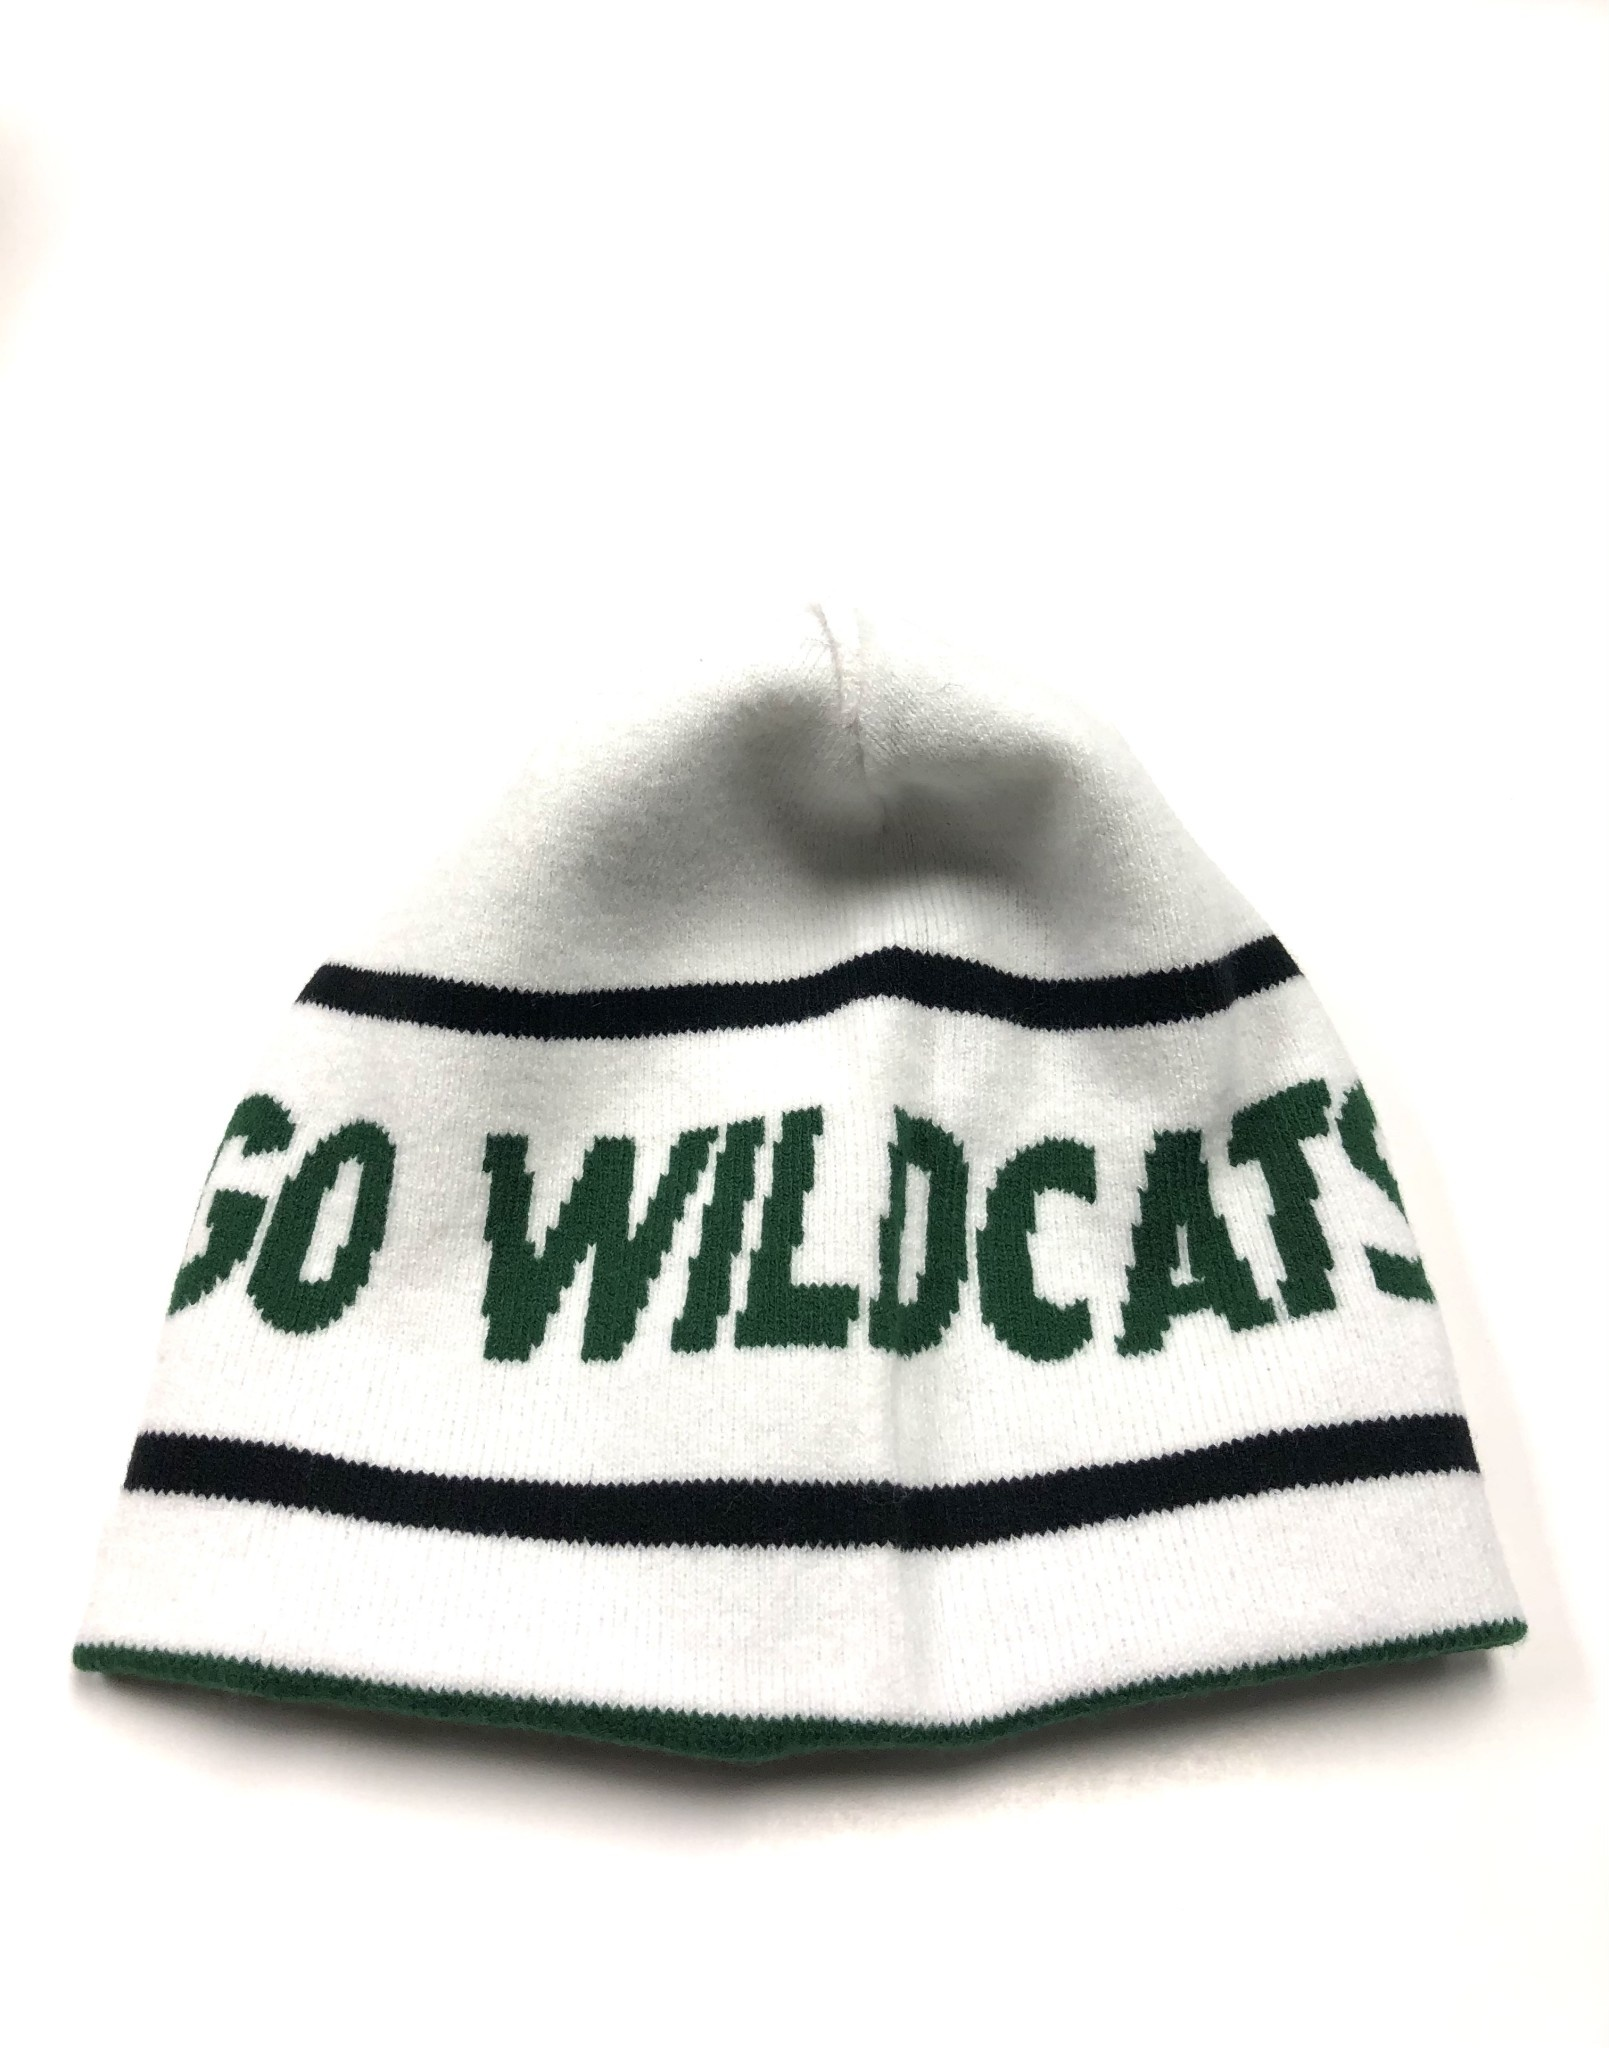 Nike Hat: Nike Reversible Knit - Green with Logo/White with Go Wildcats